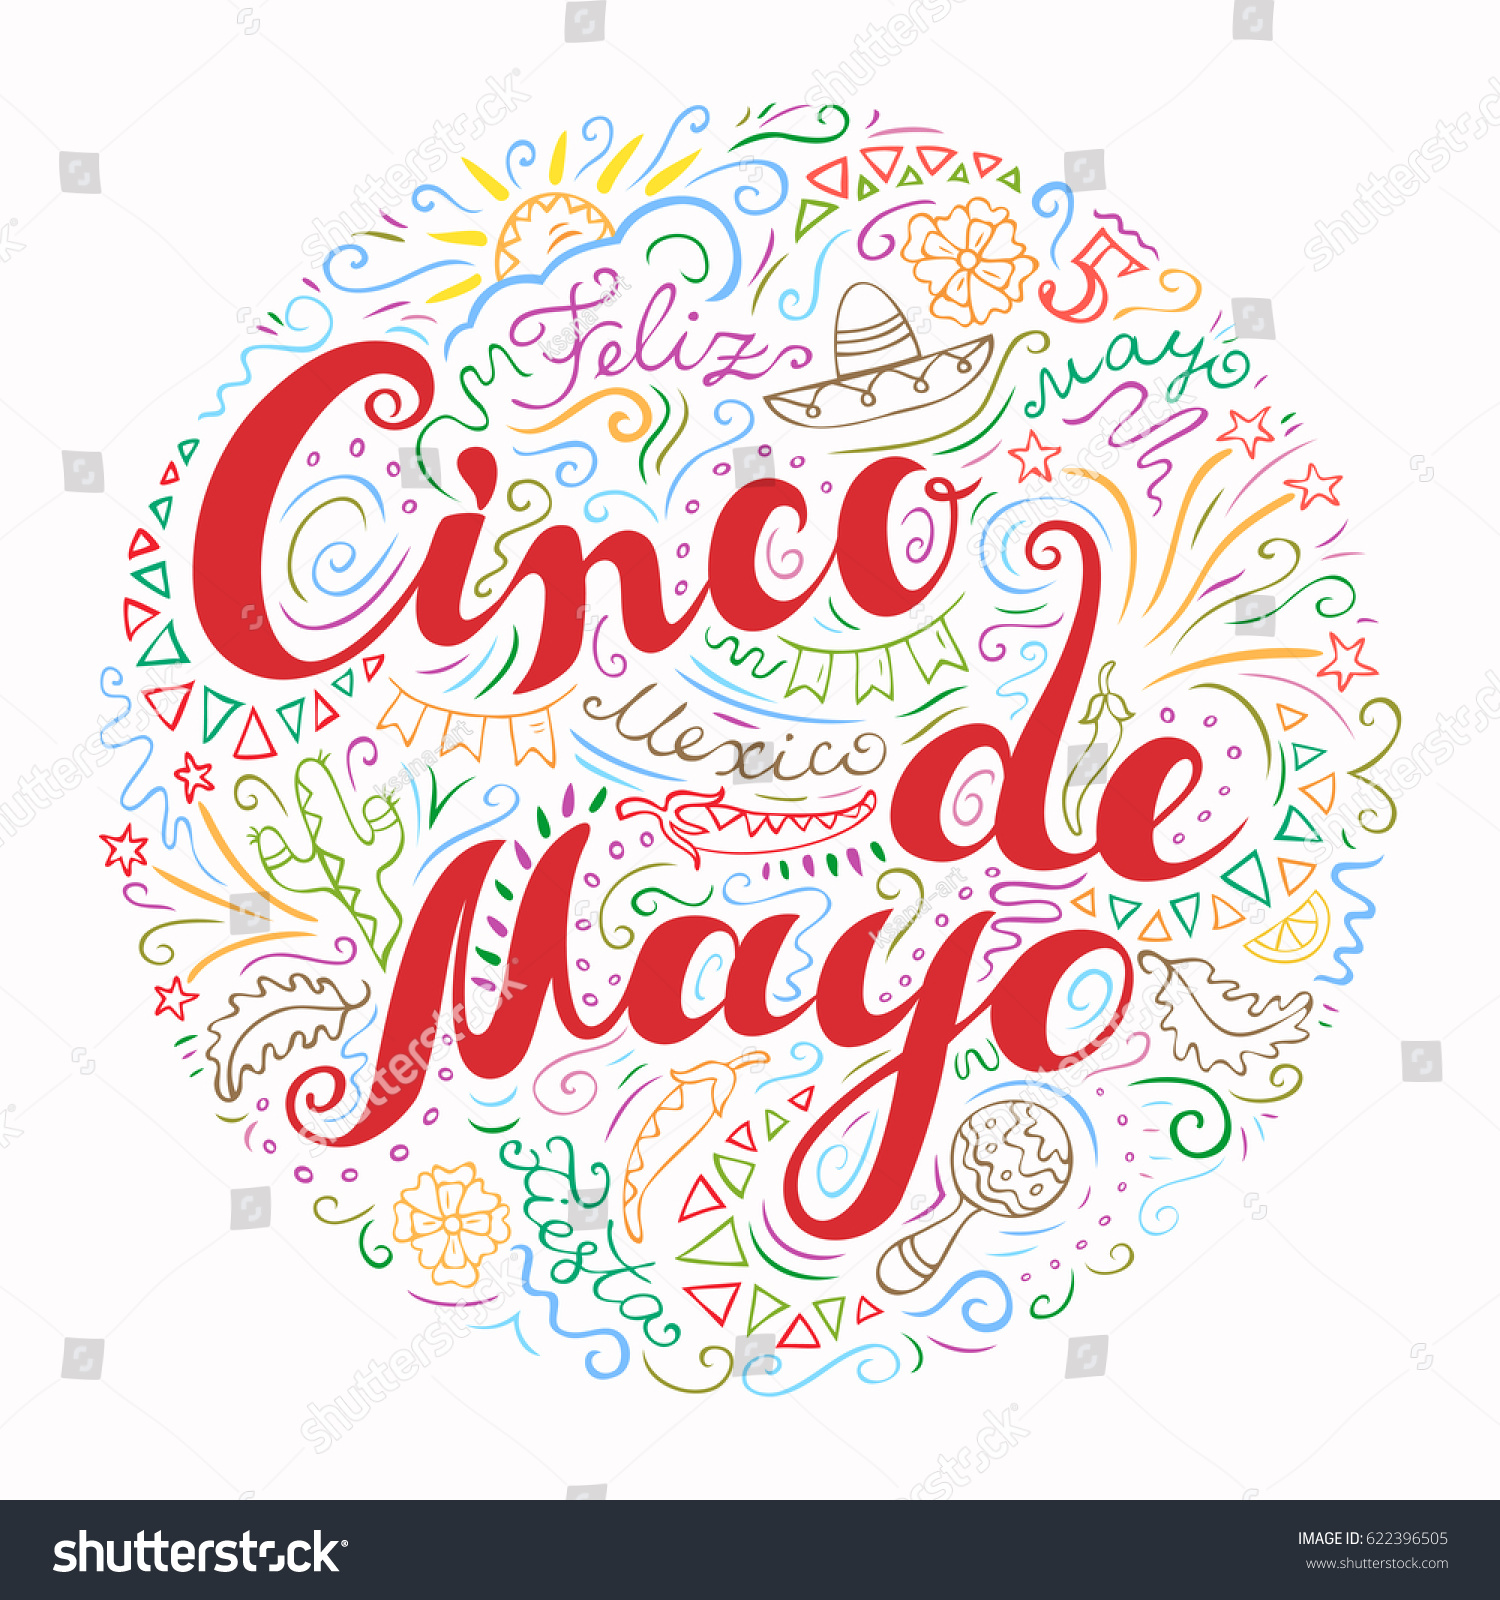 Cinco de mayo card hand drawn stock vector 622396505 shutterstock cinco de mayo card hand drawn celebration phrase doodle style handwritten greetings with mexican kristyandbryce Gallery